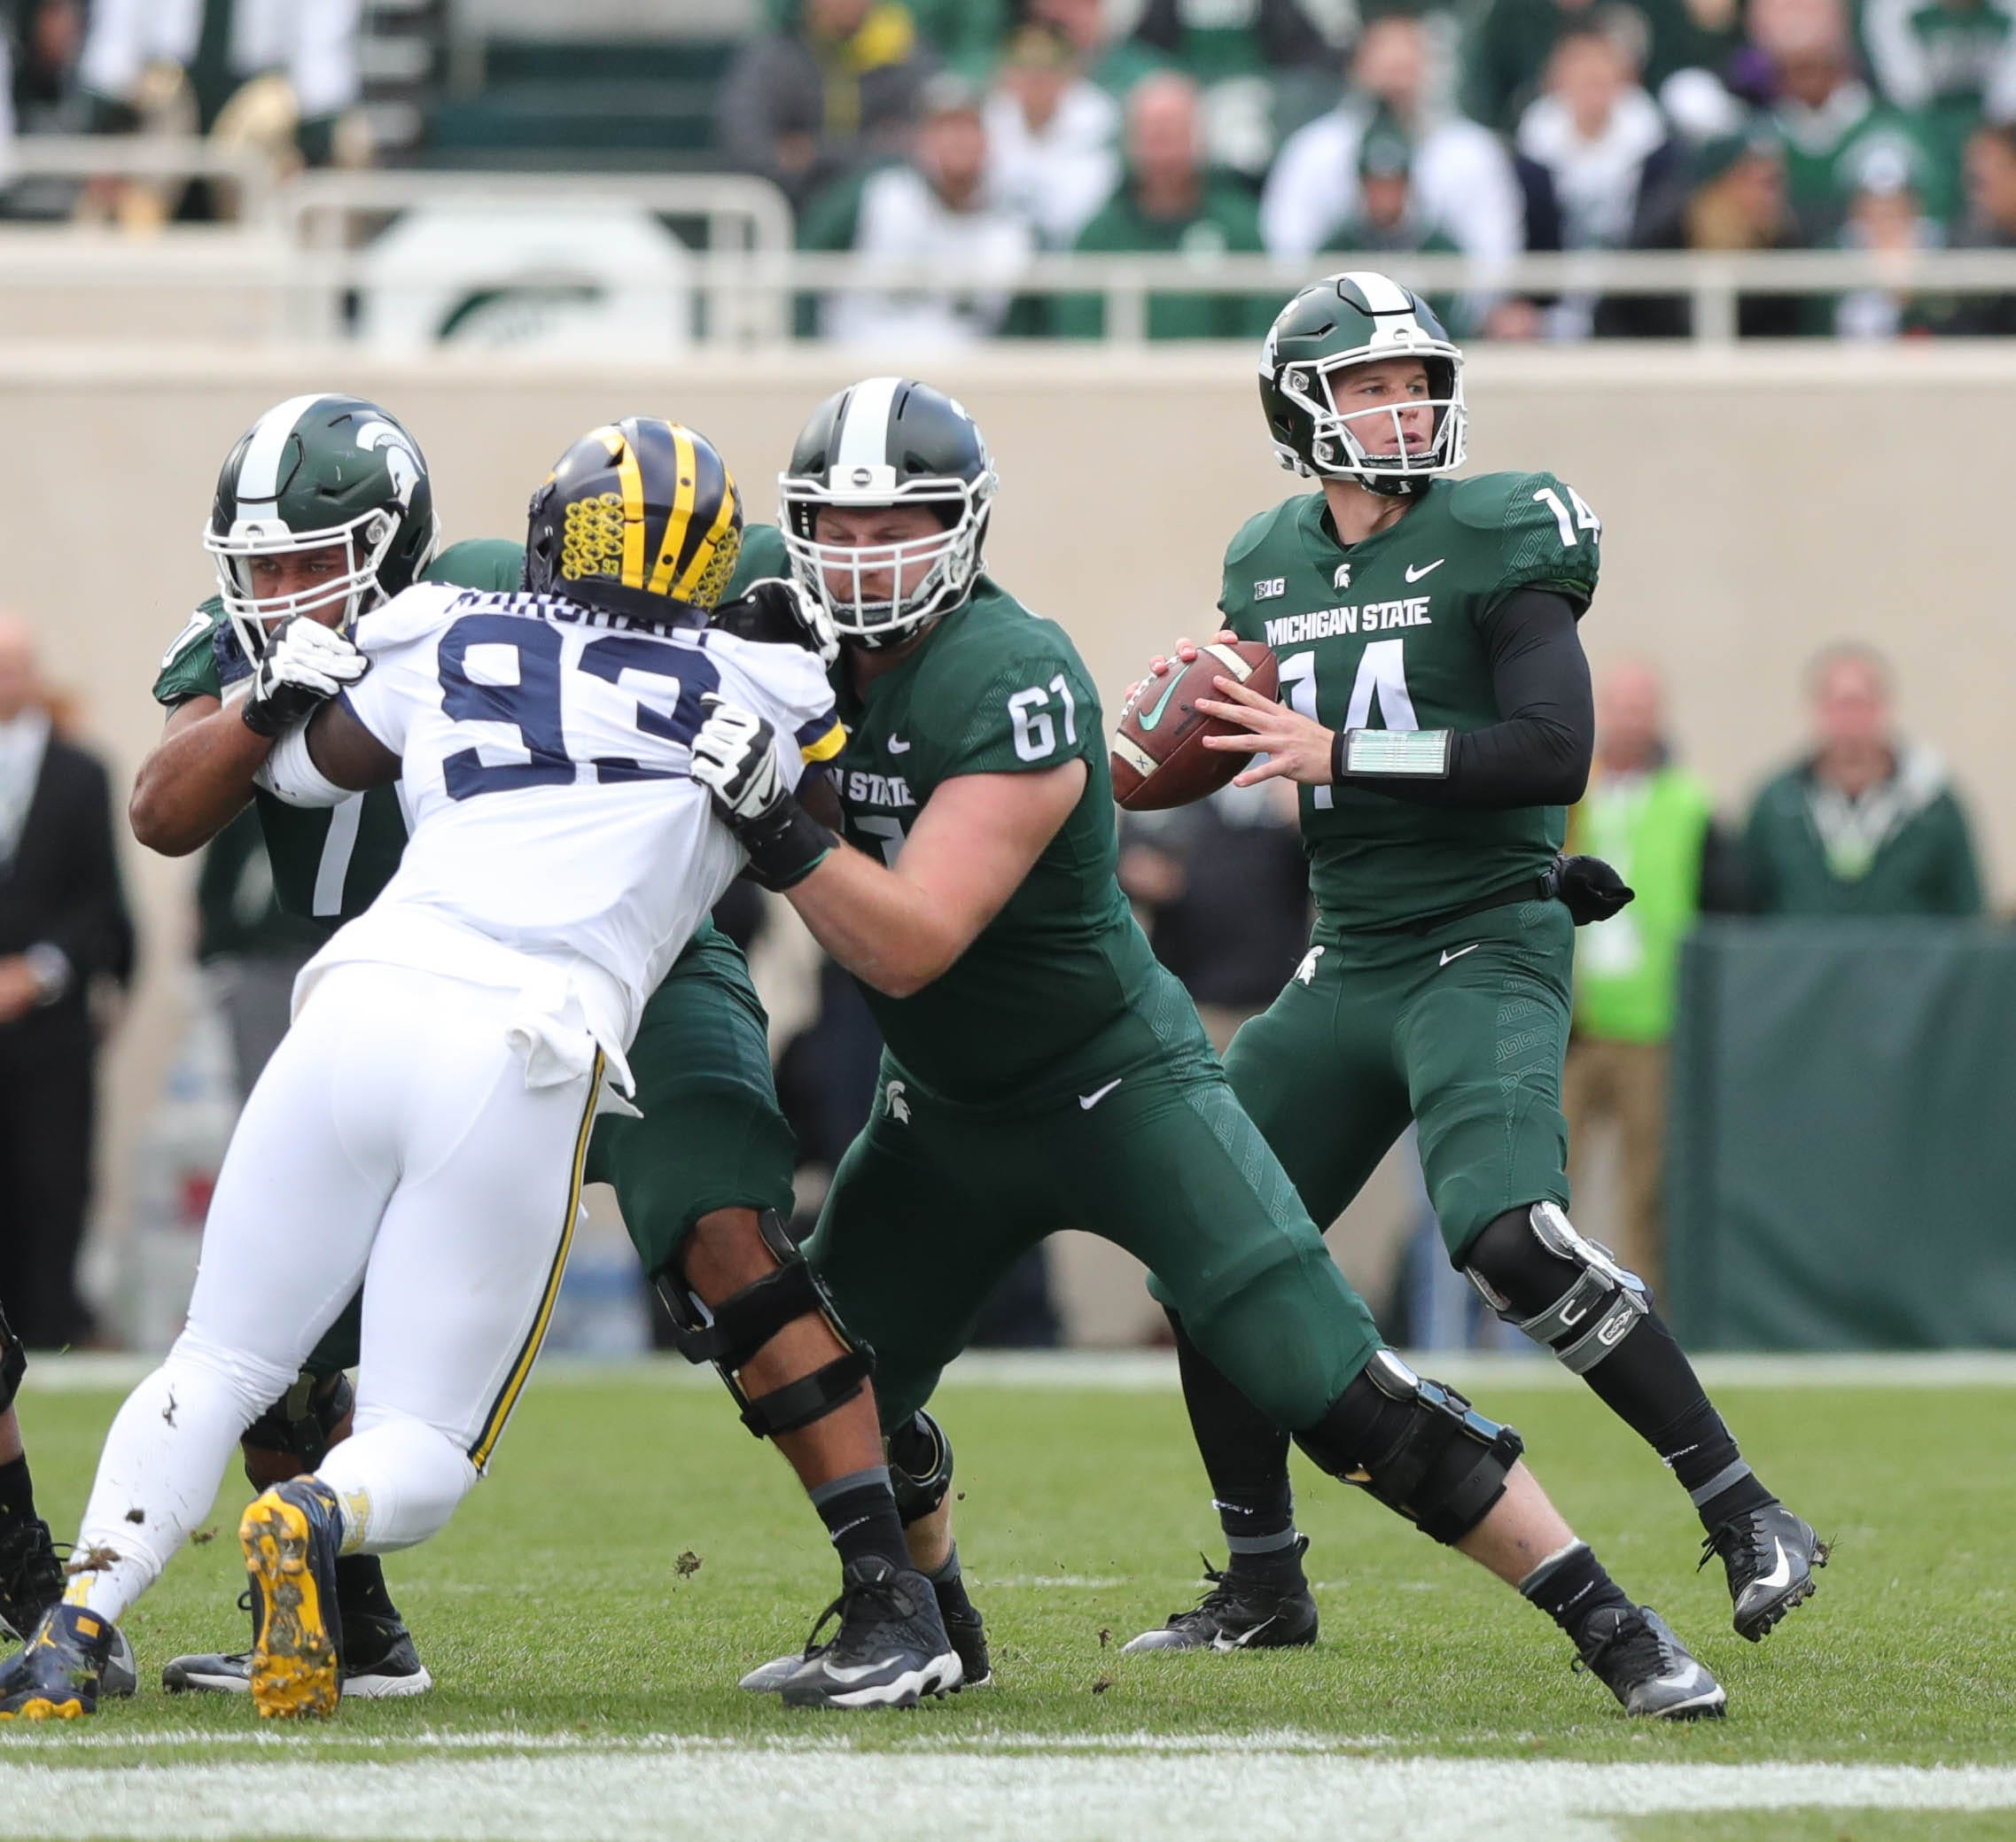 Watch Michigan State run Philly Special trick play for touchdown against Michigan